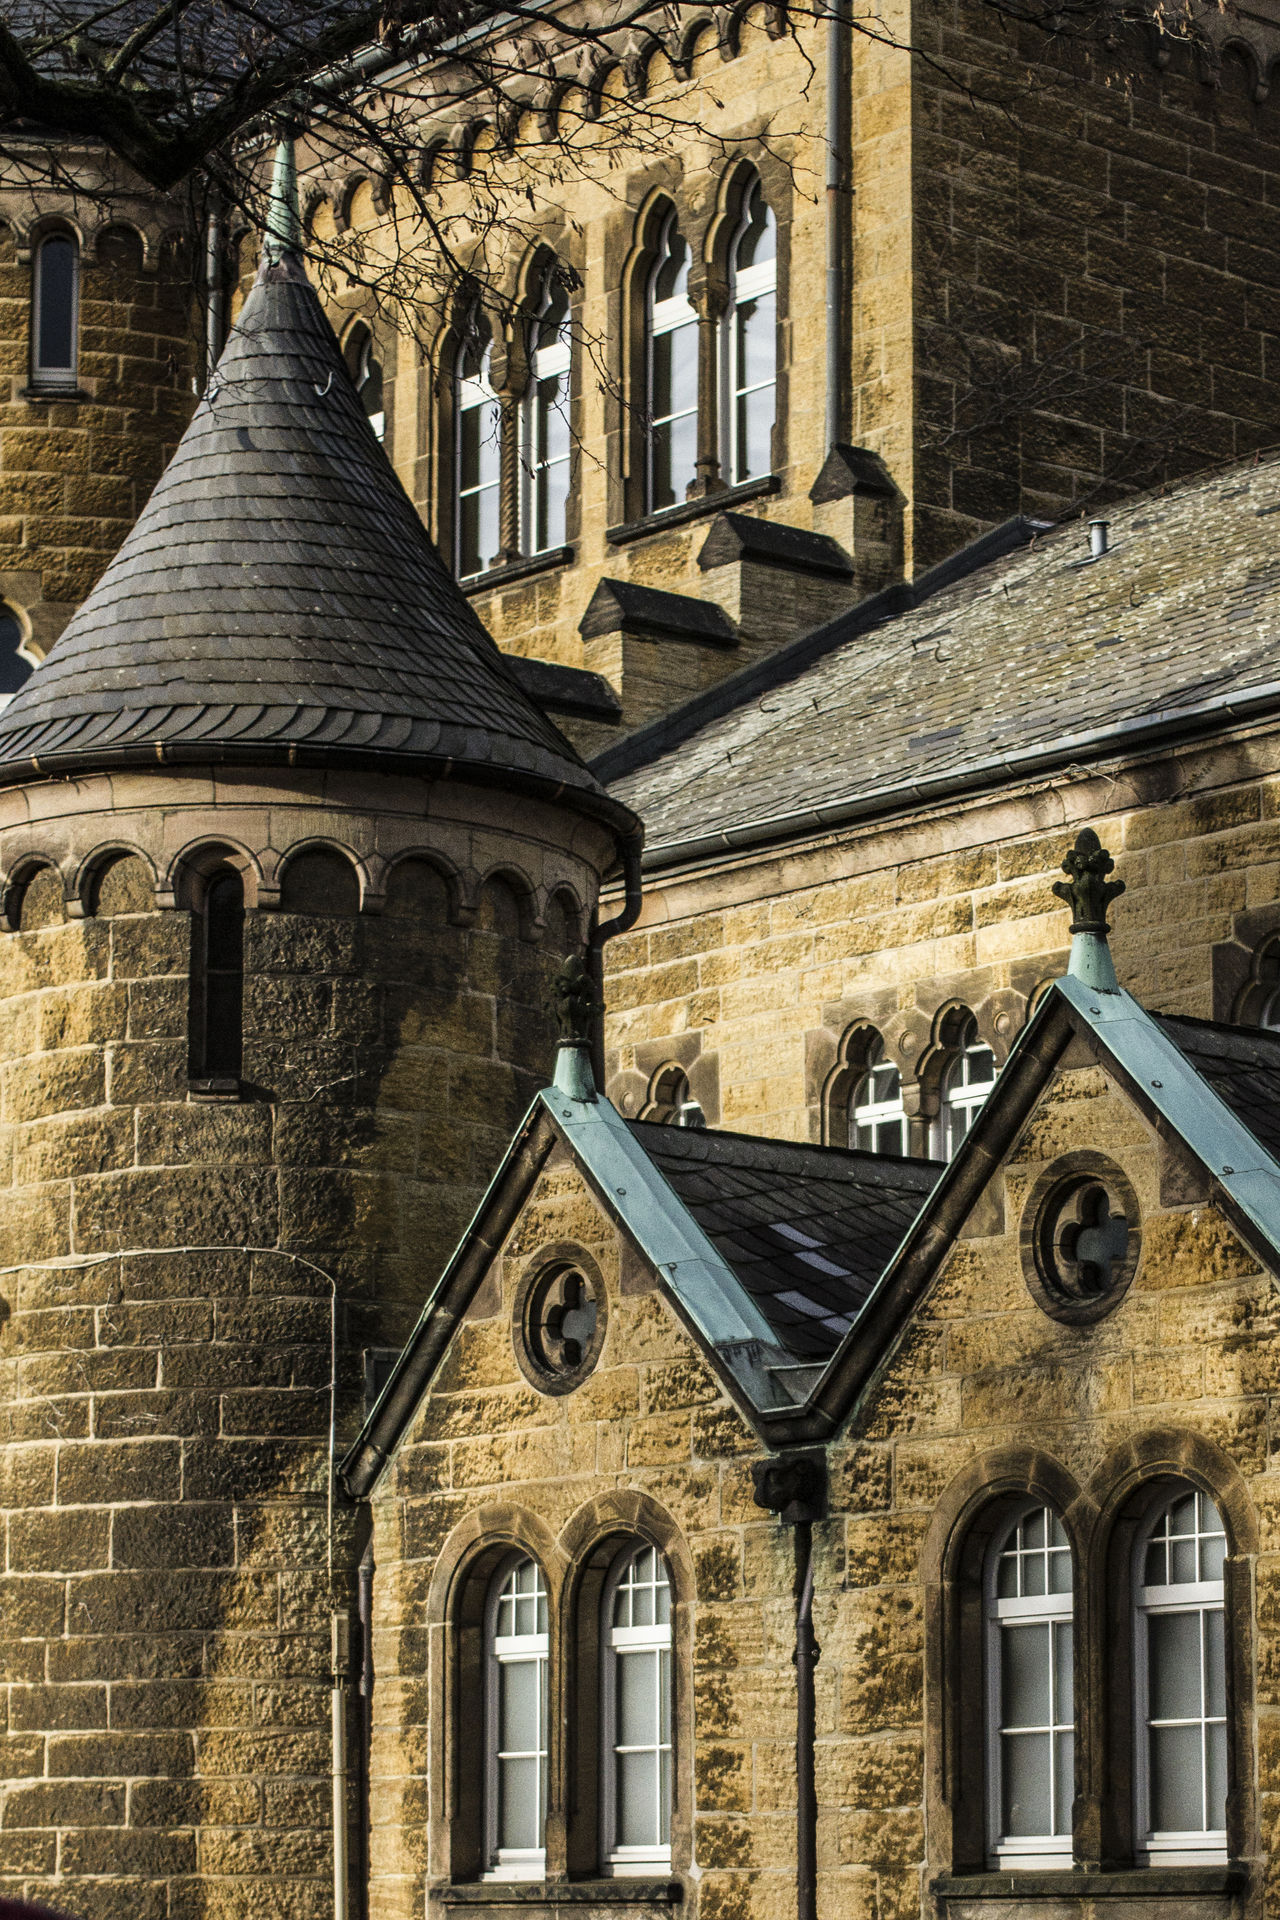 Arch Architectural Feature Architecture Building Exterior Built Structure Day Exterior Façade Germany Goslar Goslar Germany History No People Old Town Old Town Outdoors Place Of Worship Tourism Town Window